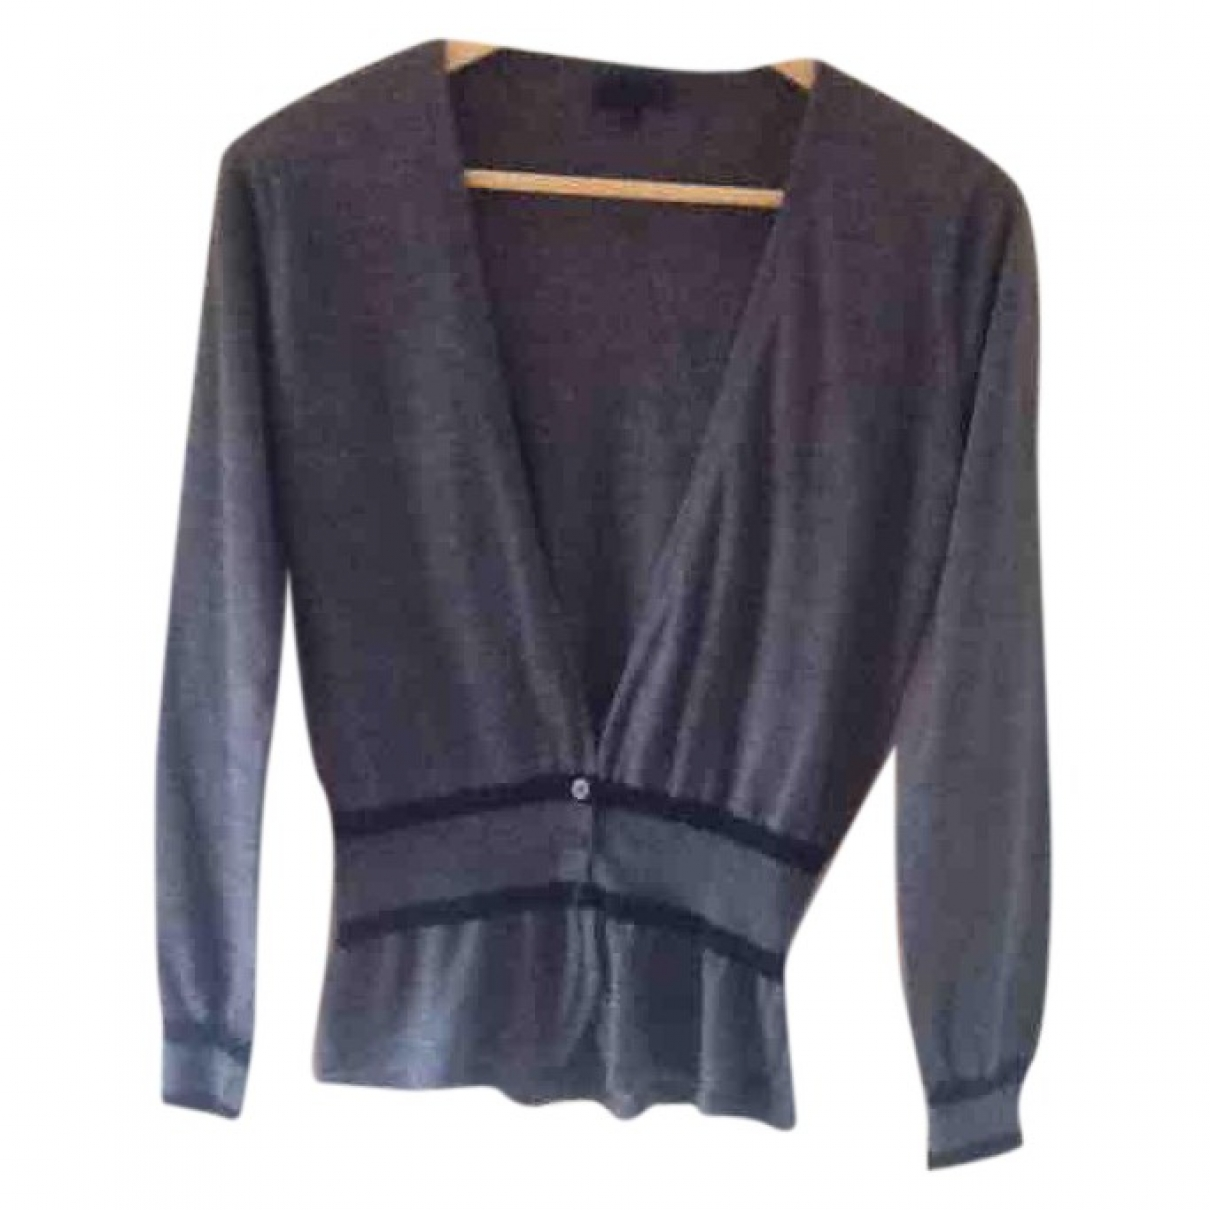 Paul Smith \N Pullover in  Grau Wolle